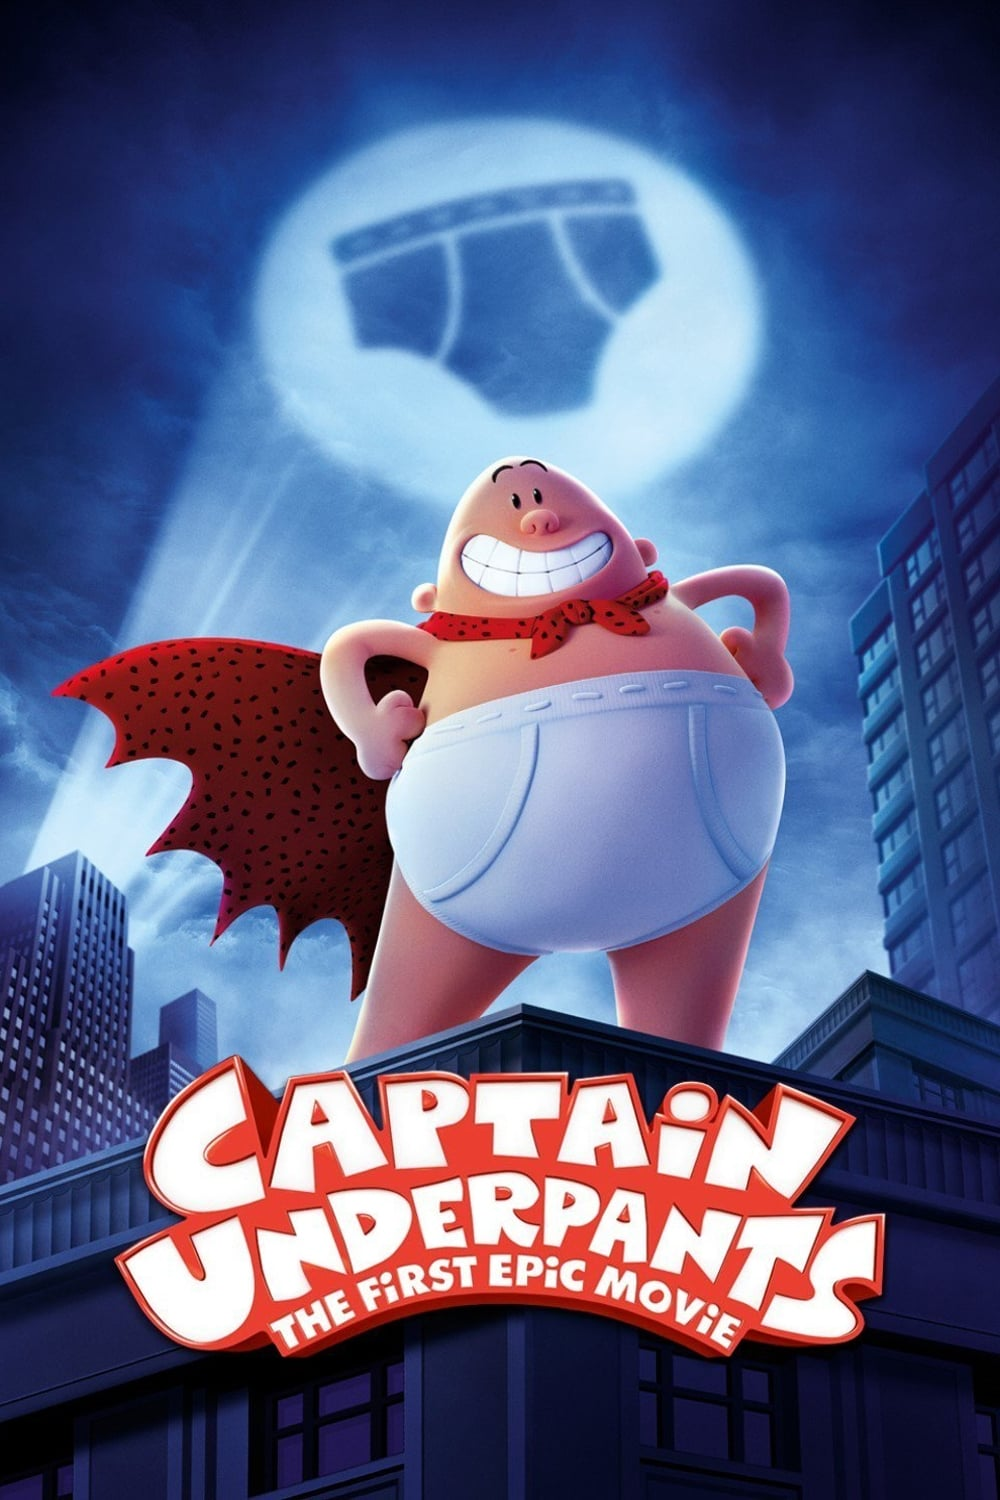 image for Captain Underpants: The First Epic Movie